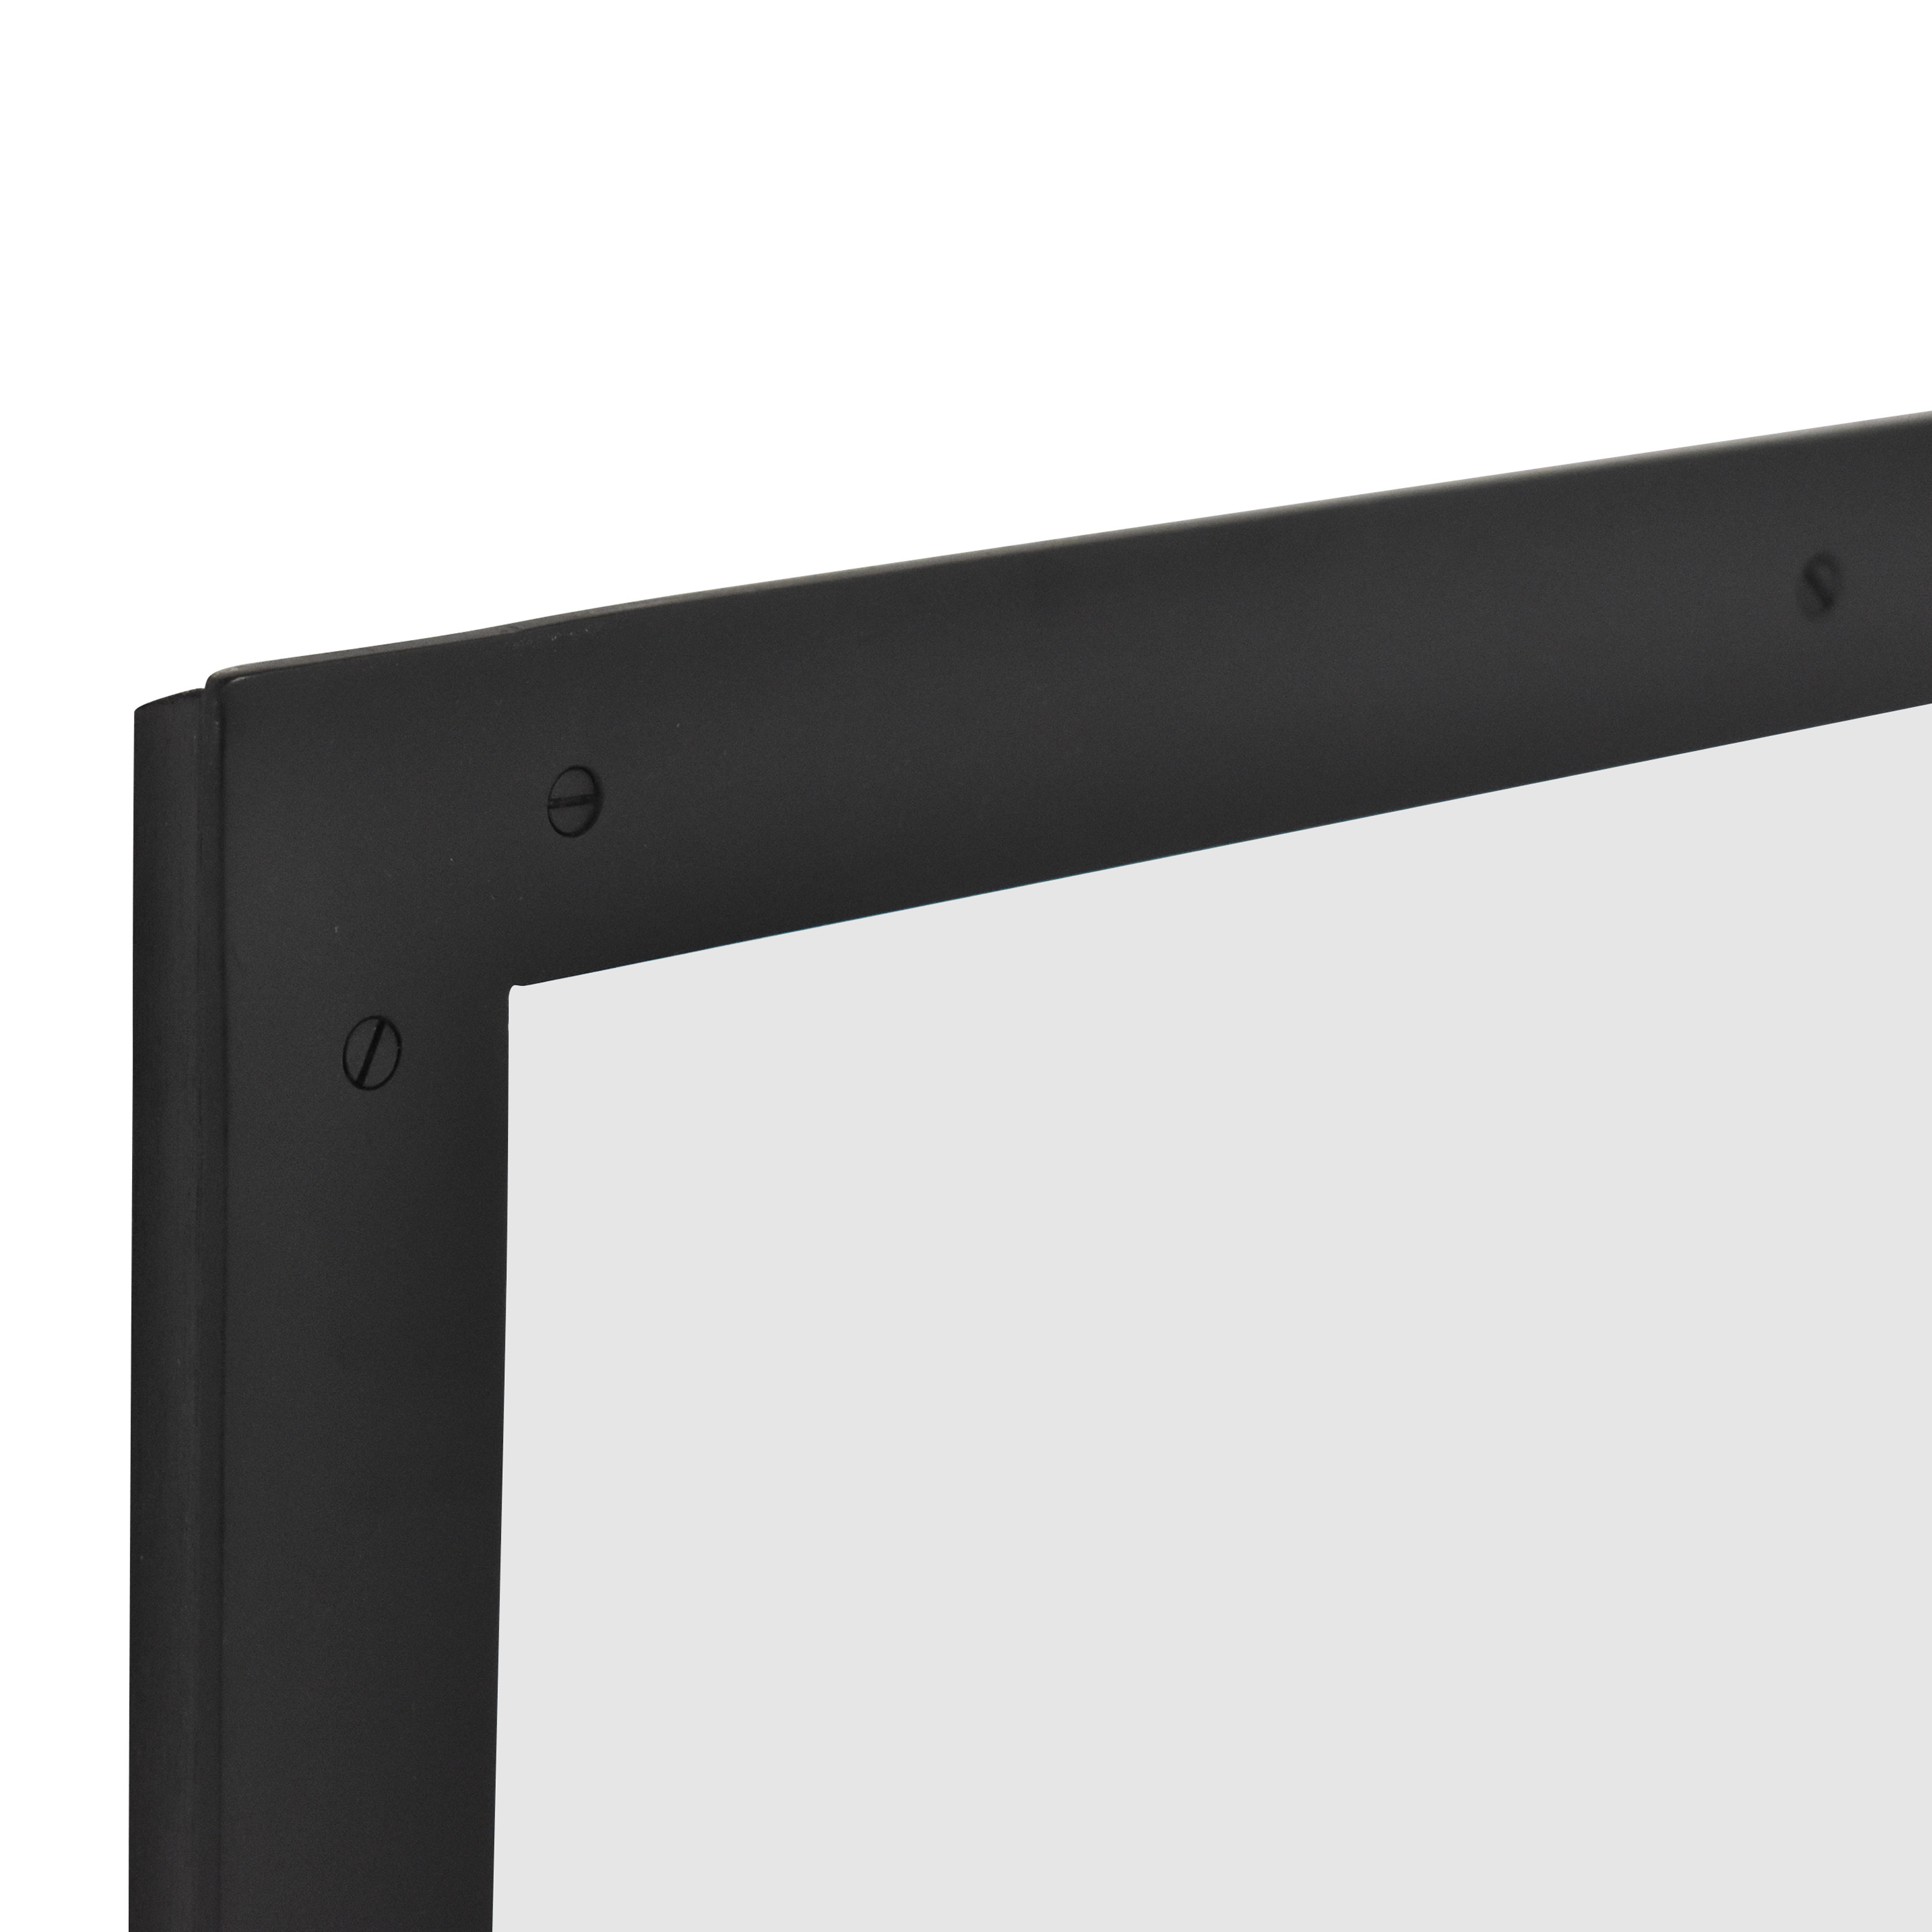 Restoration Hardware Restoration Hardware Framed Wall Mirror second hand